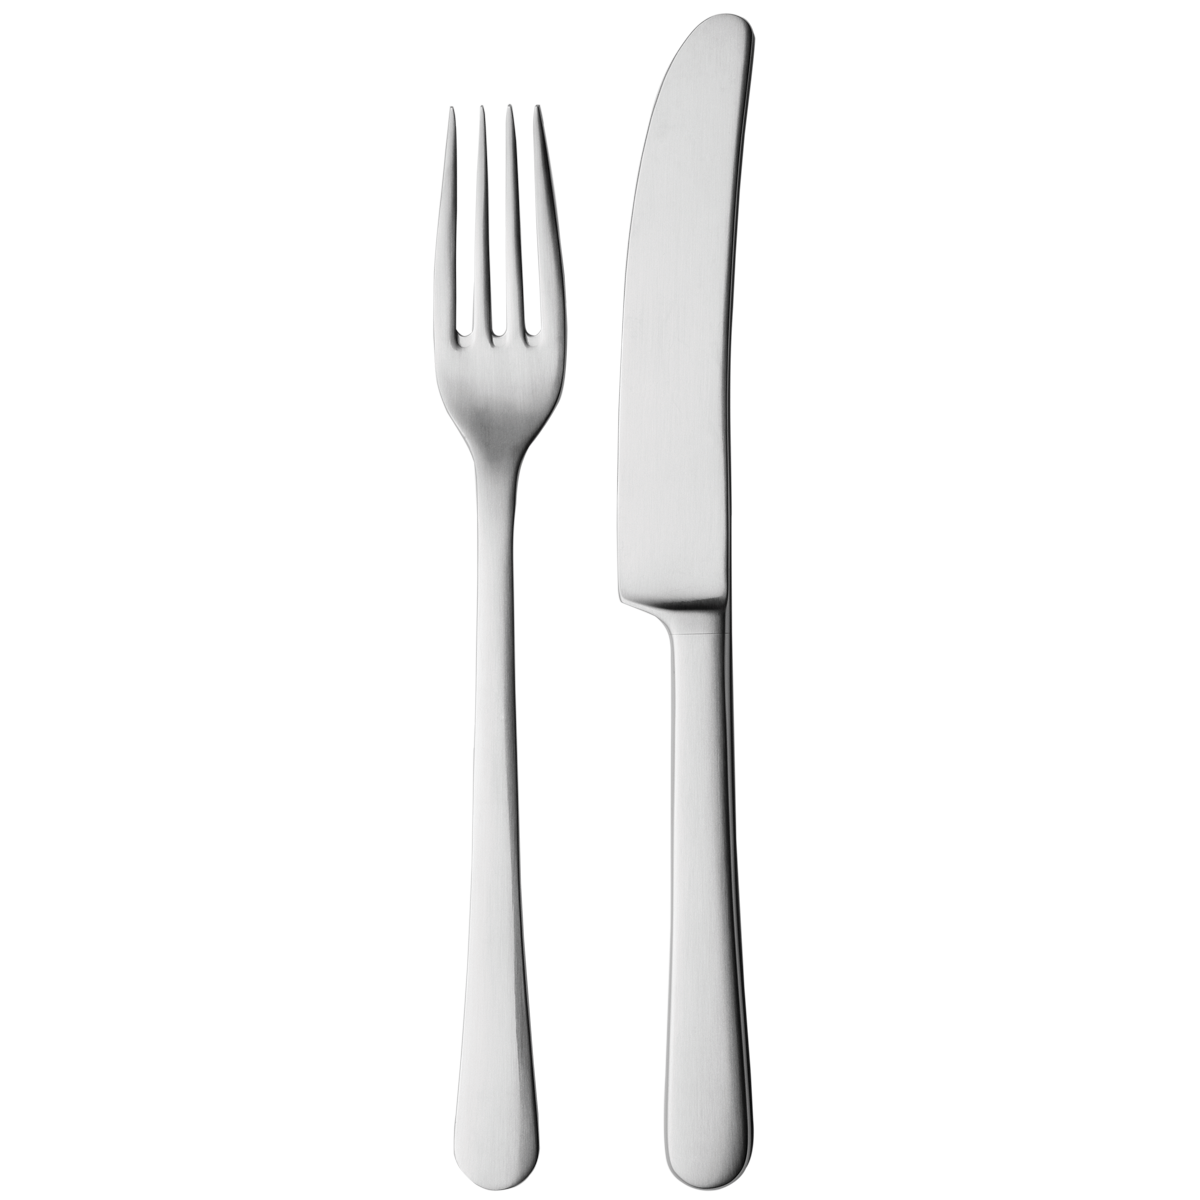 Fork And Knife Images - Clipa